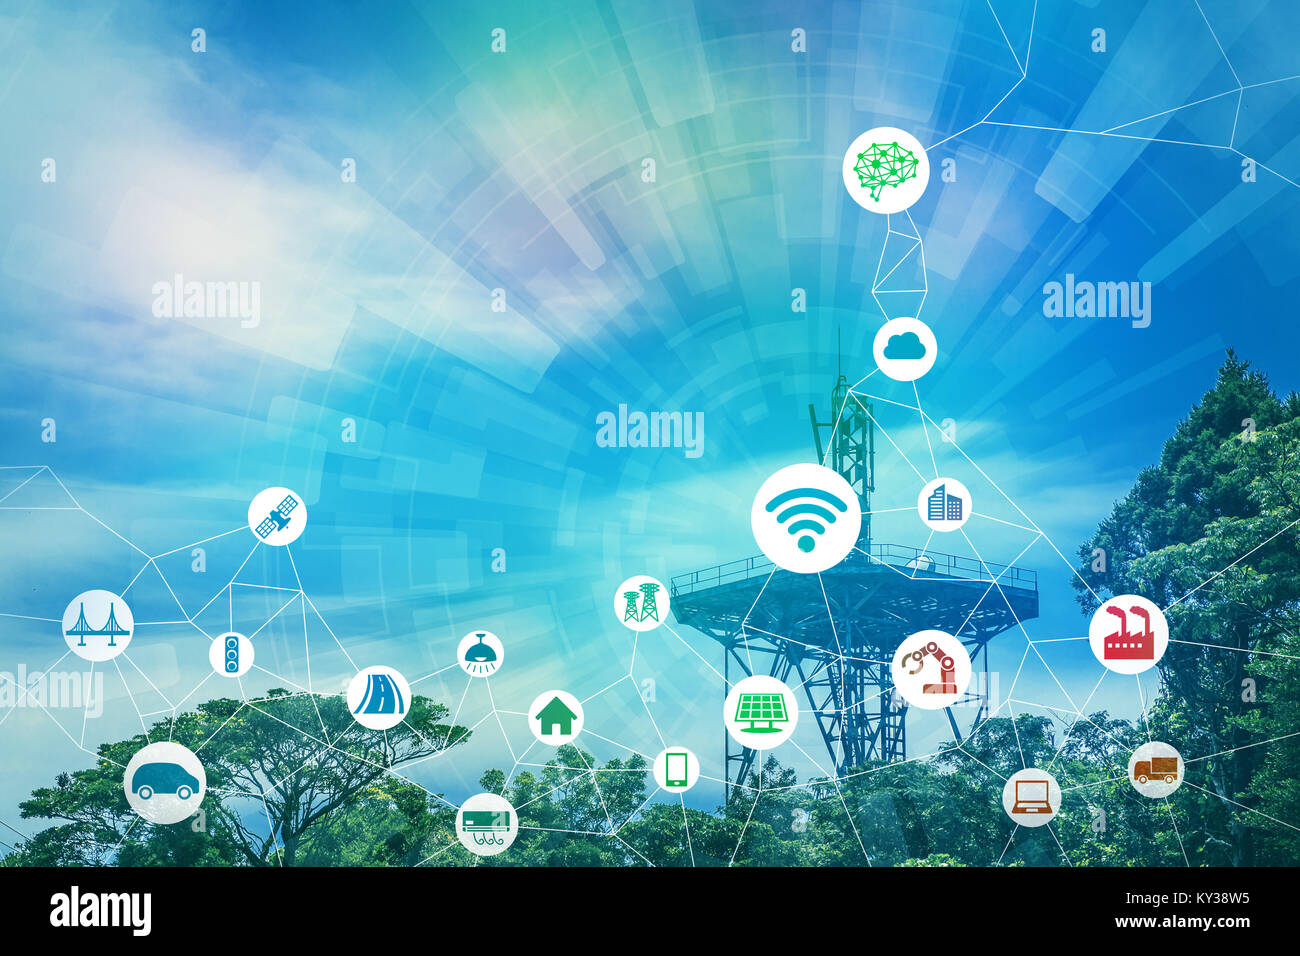 Wireless communication network and various industry concept. - Stock Image